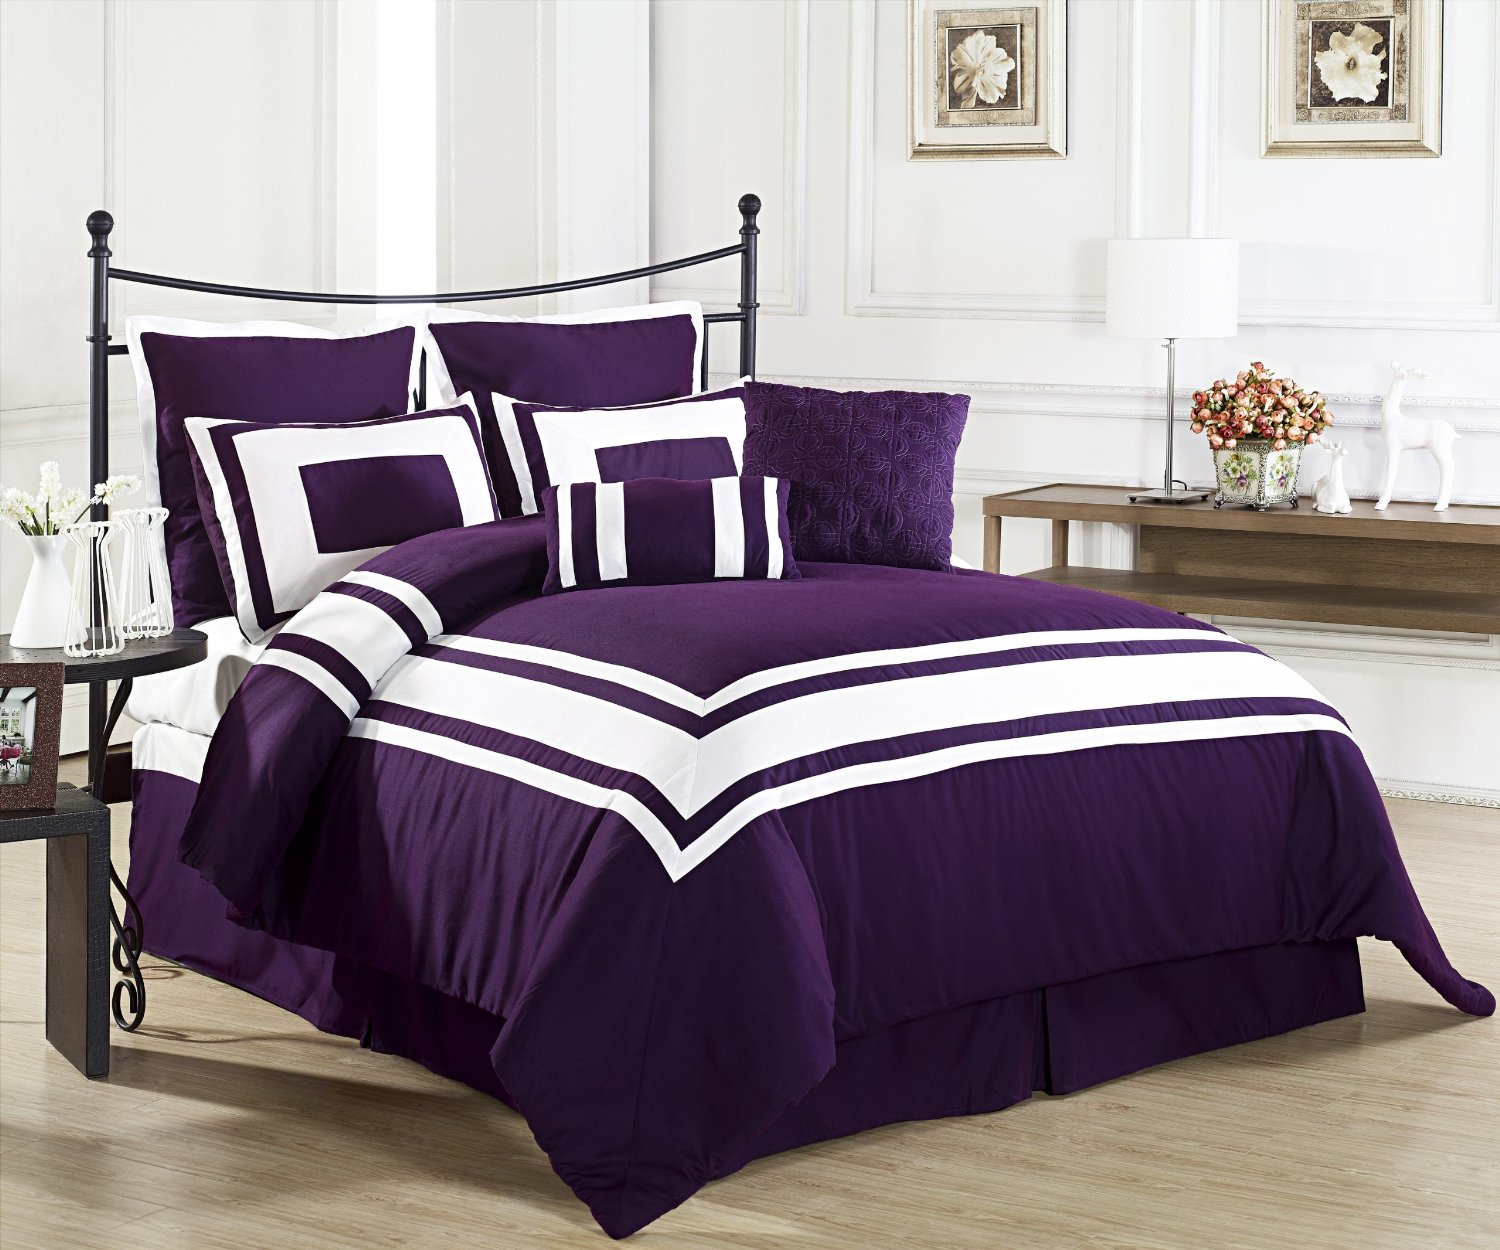 Purple King Comforter Sets | Purple Comforter Sets | Purple Twin Comforter Set